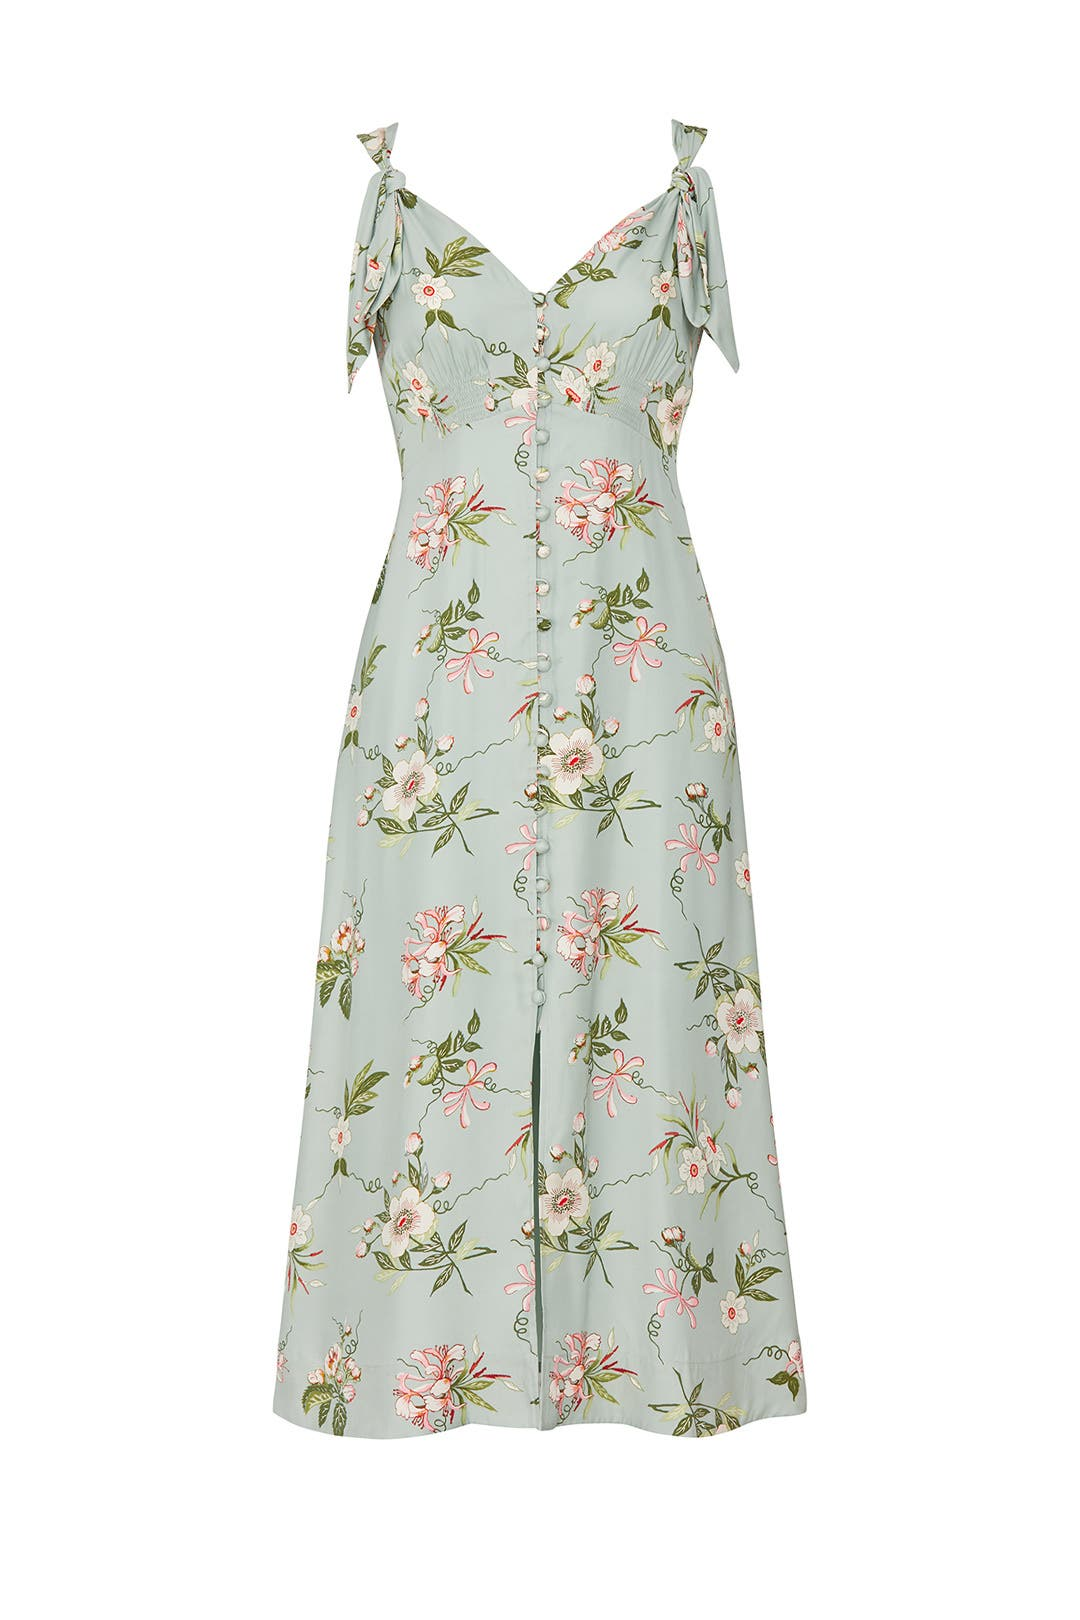 05c393fd6 Sleeveless Lita Tie Dress by Rebecca Taylor for $80 | Rent the Runway